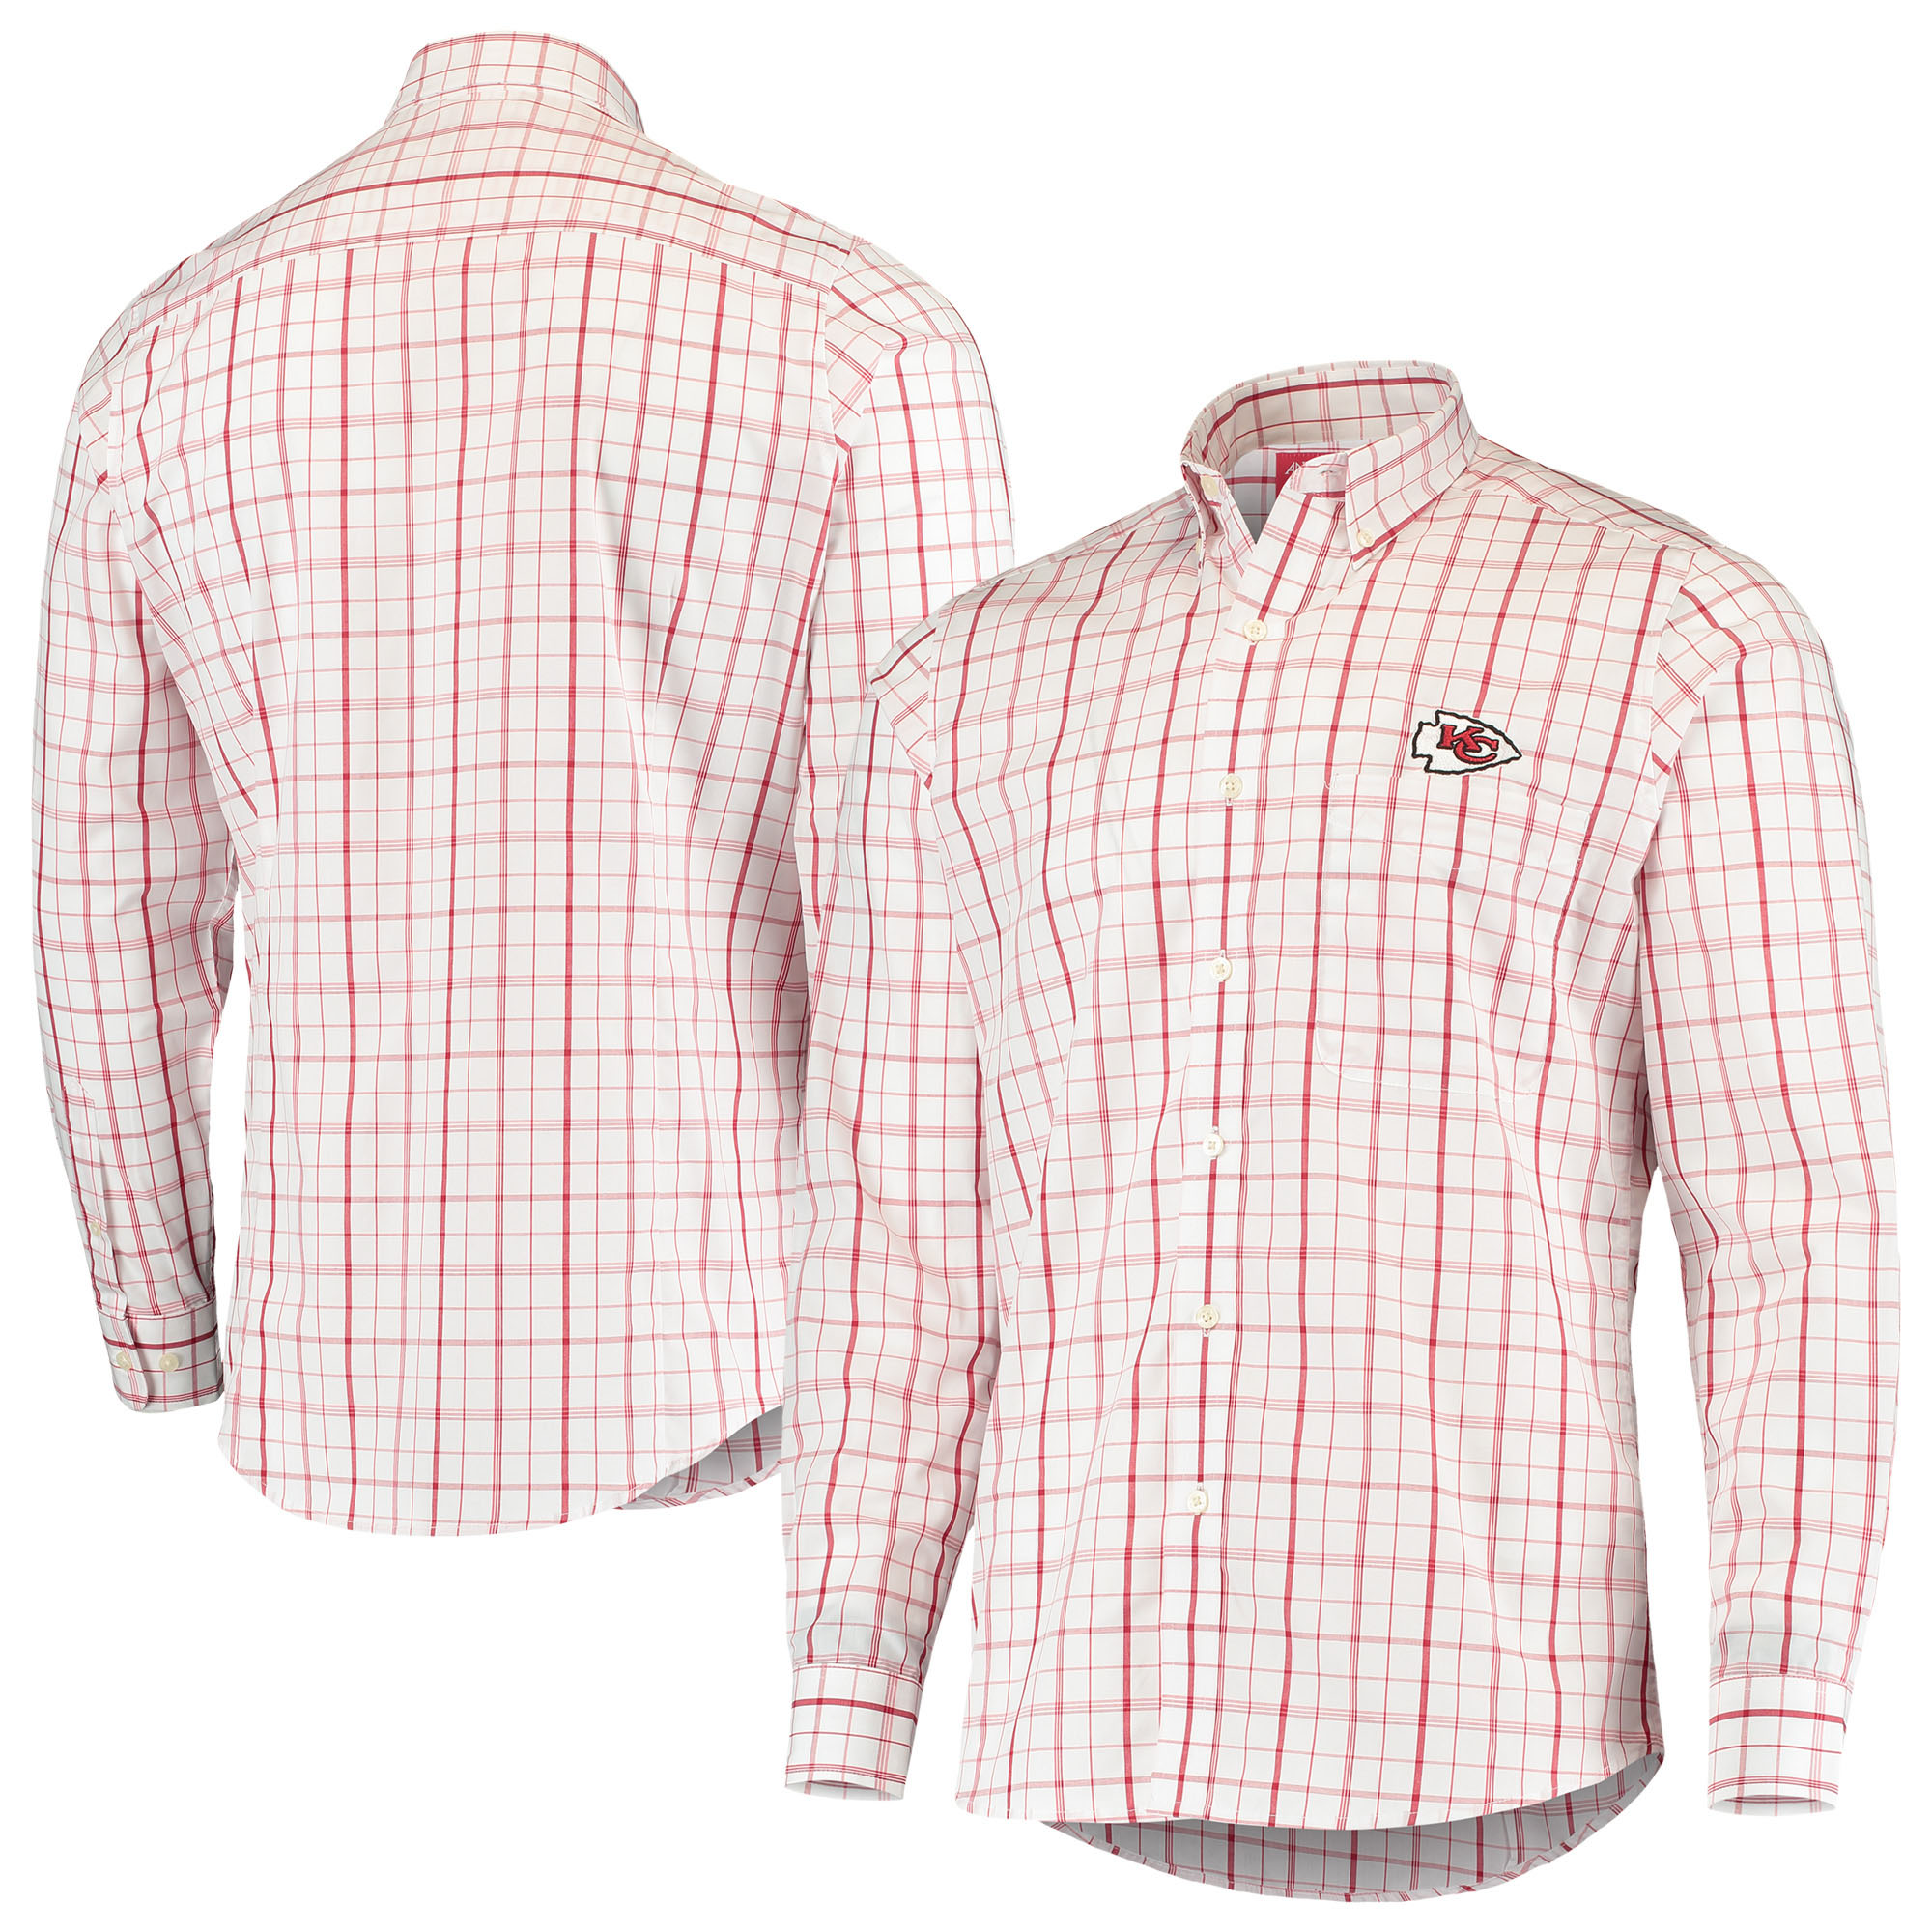 Kansas City Chiefs Antigua Keen Long Sleeve Button-Down Shirt - White/Red